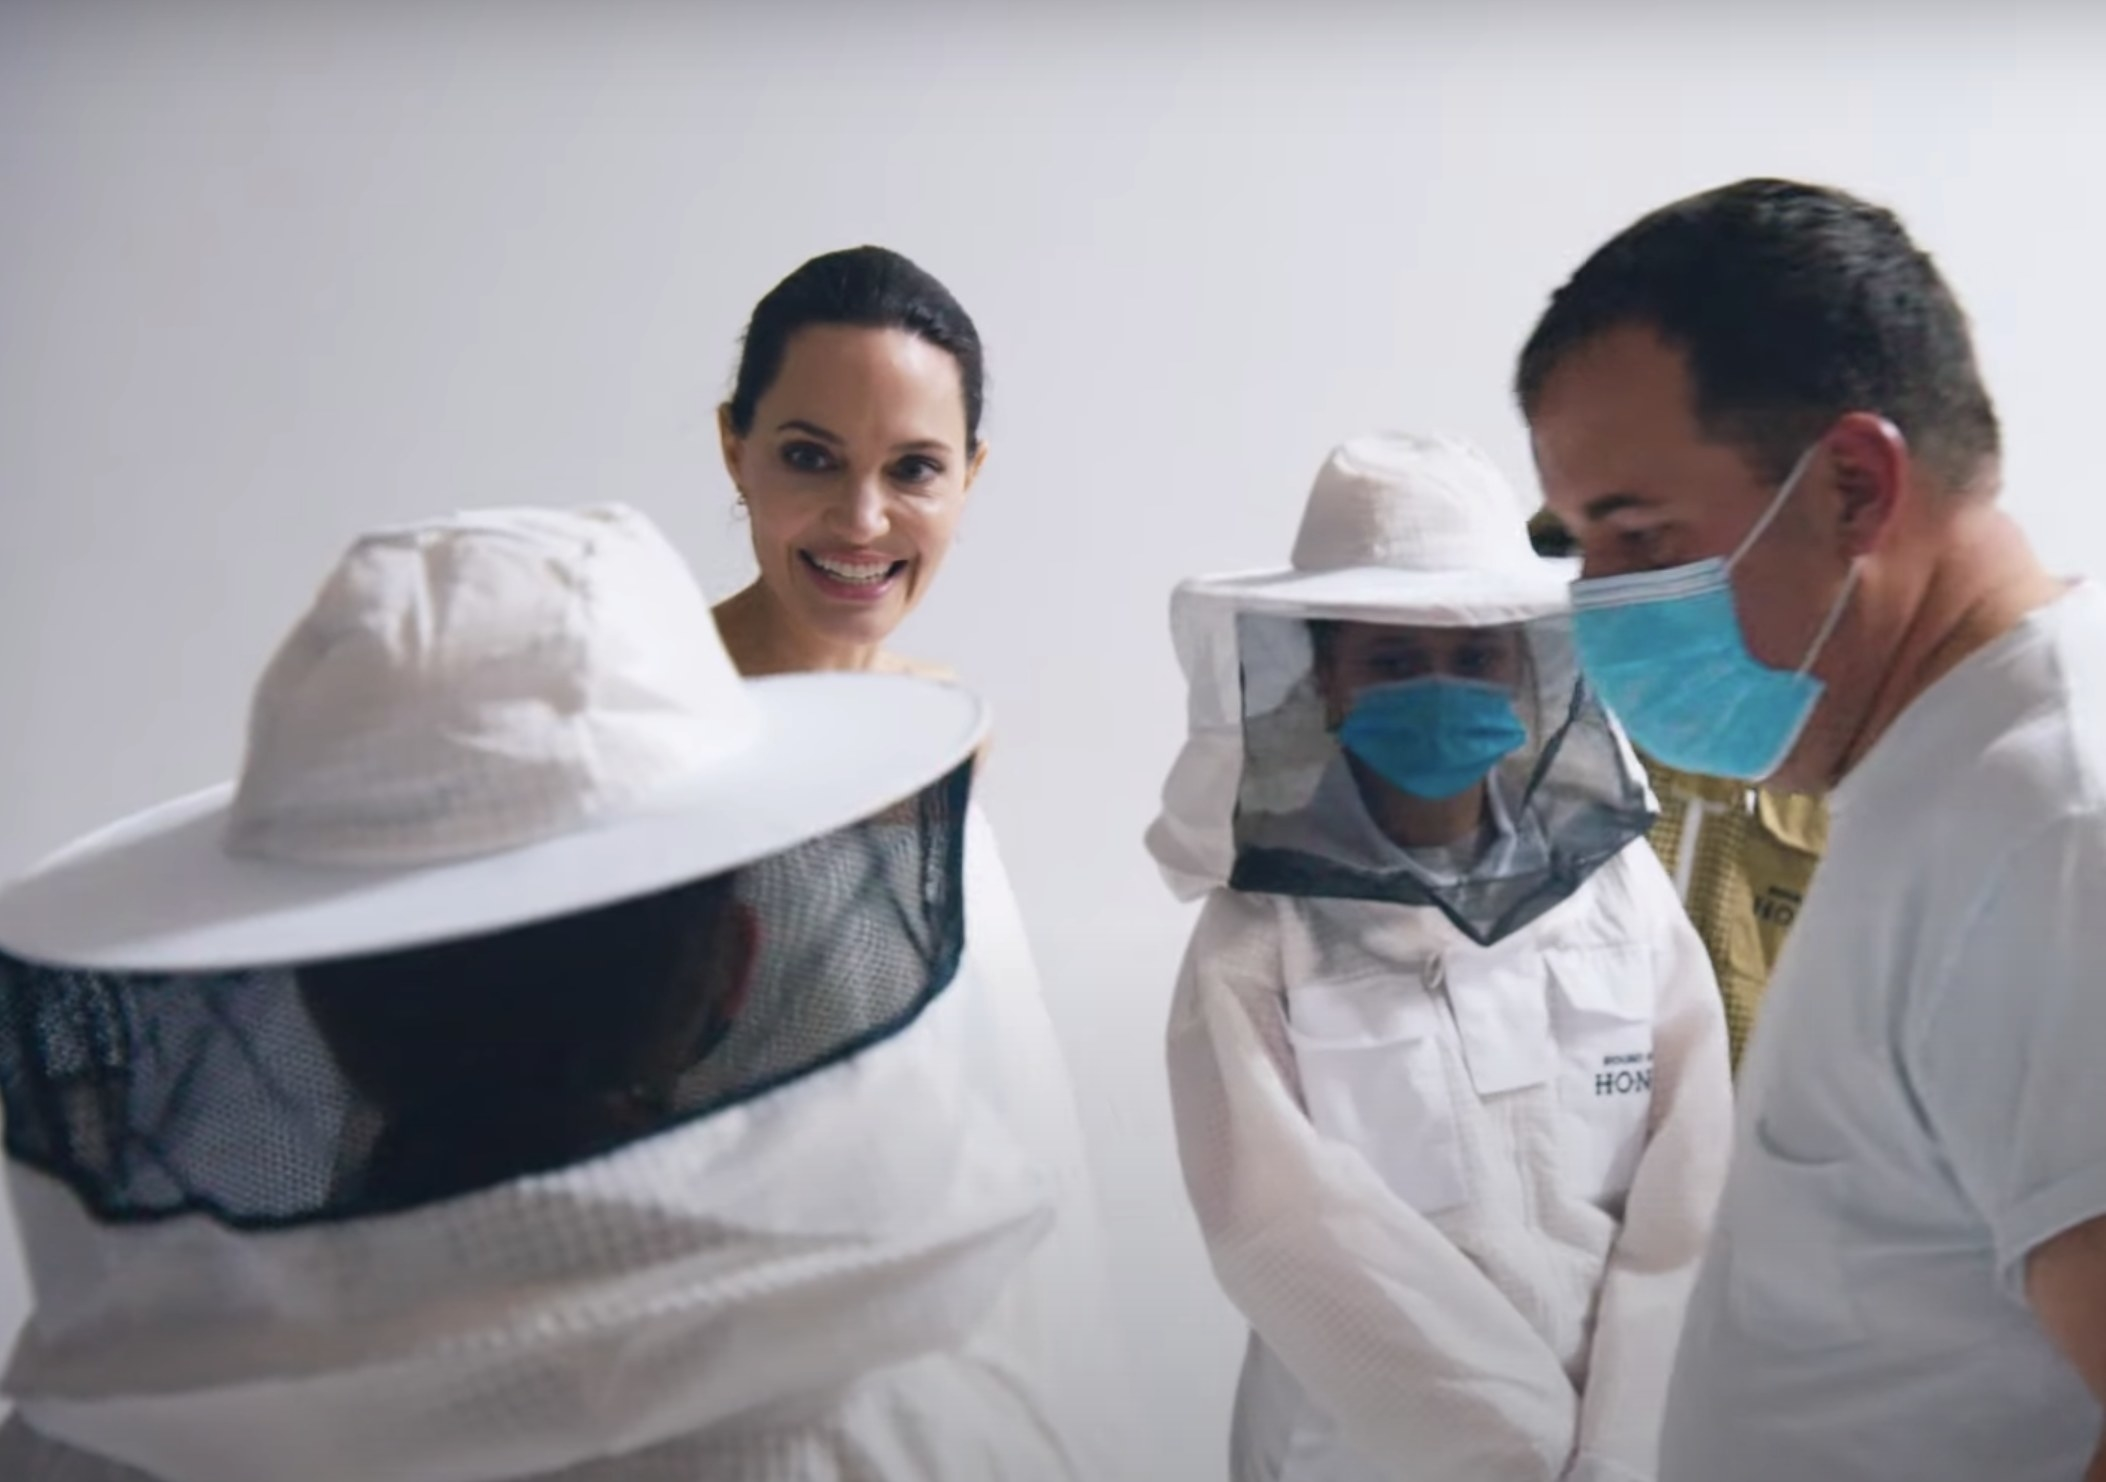 Angelina smiles at the beekeepers on set